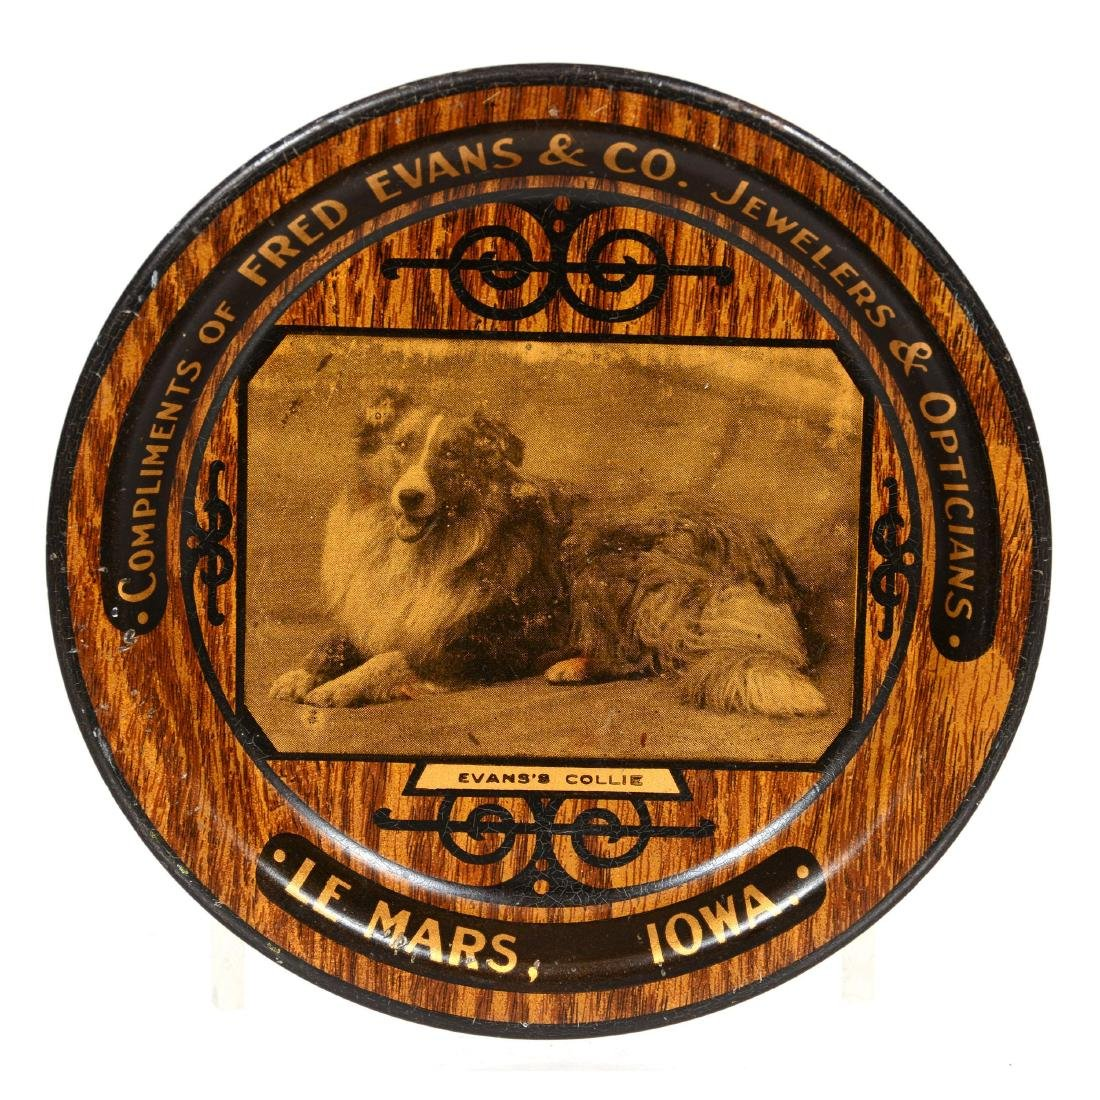 Original Round Advertising Tip Tray